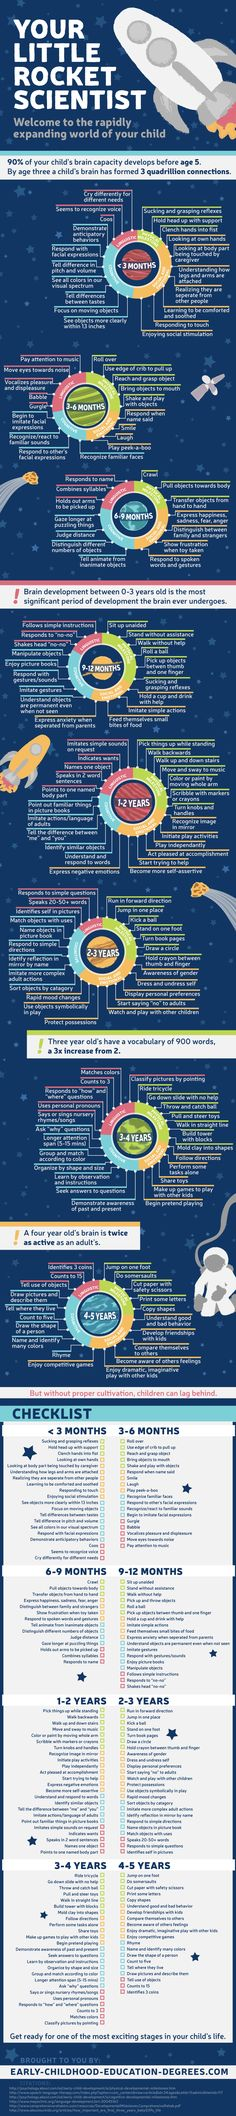 The Milestones of a Child's Mind Development by earl-childhood-education-degrees.com #Infographic #Preschool #Milestones #Mental_Development